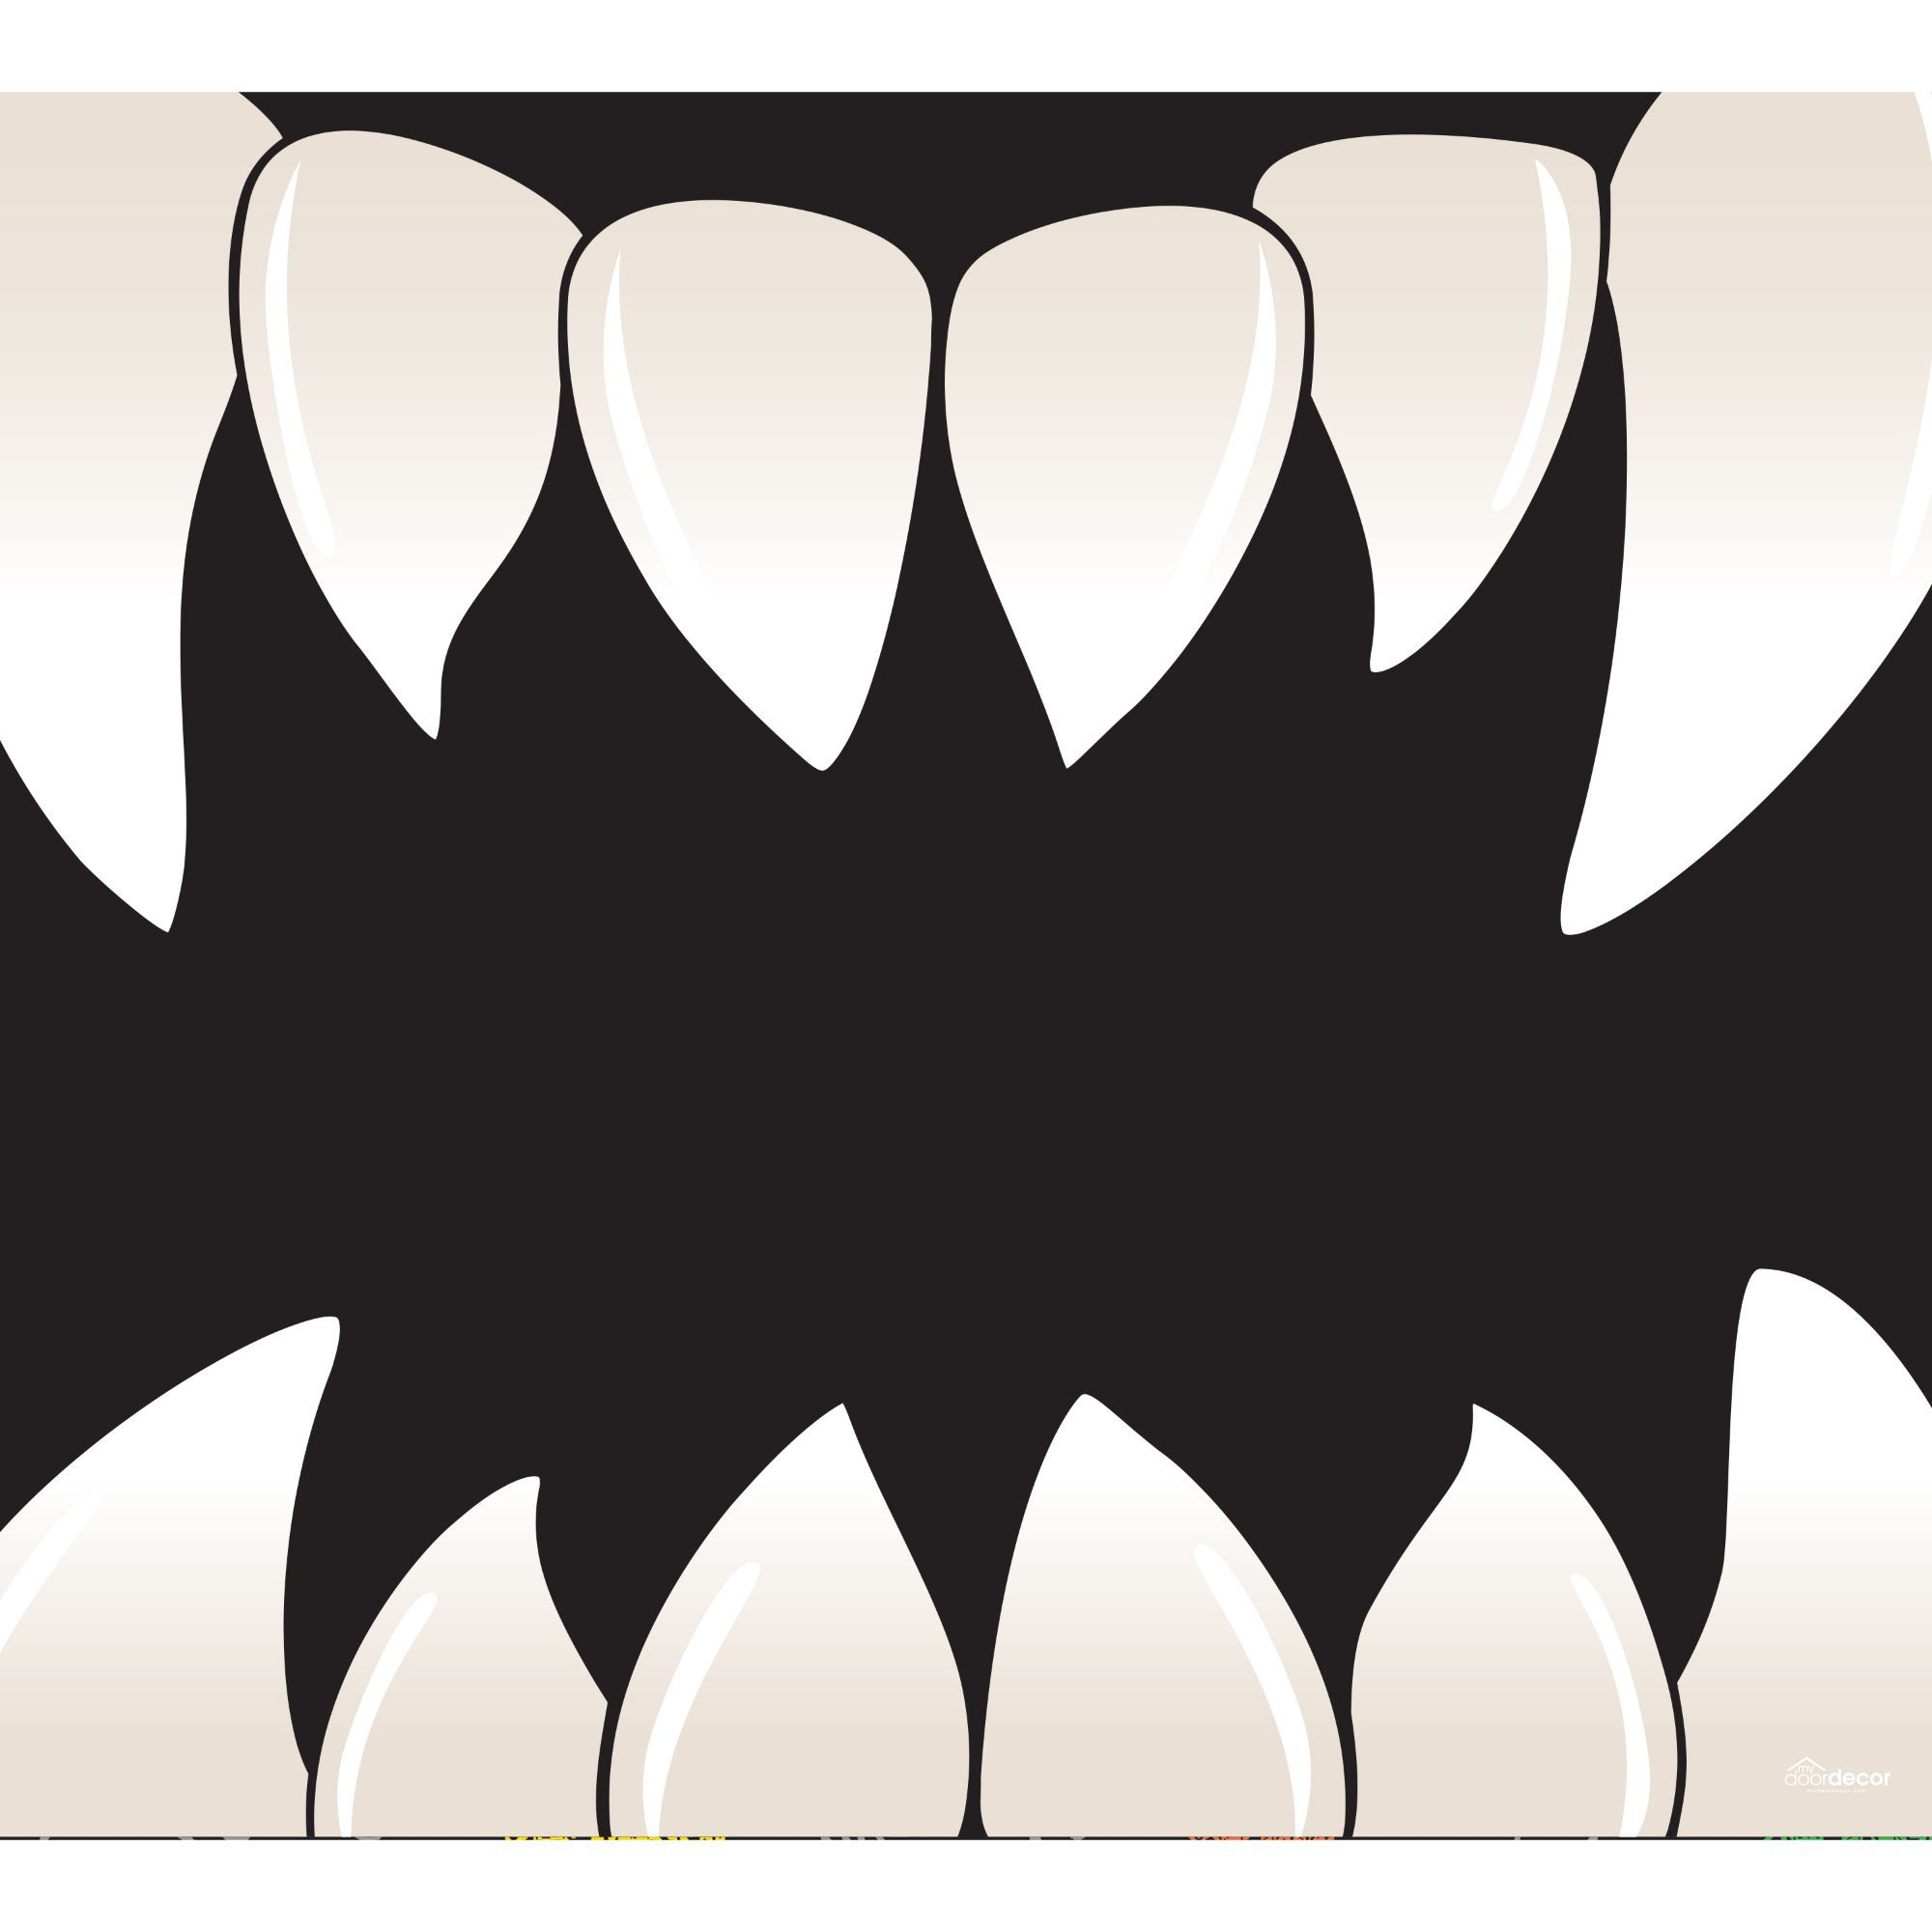 7' x 8' Black and White Scary Teeth Halloween Sing